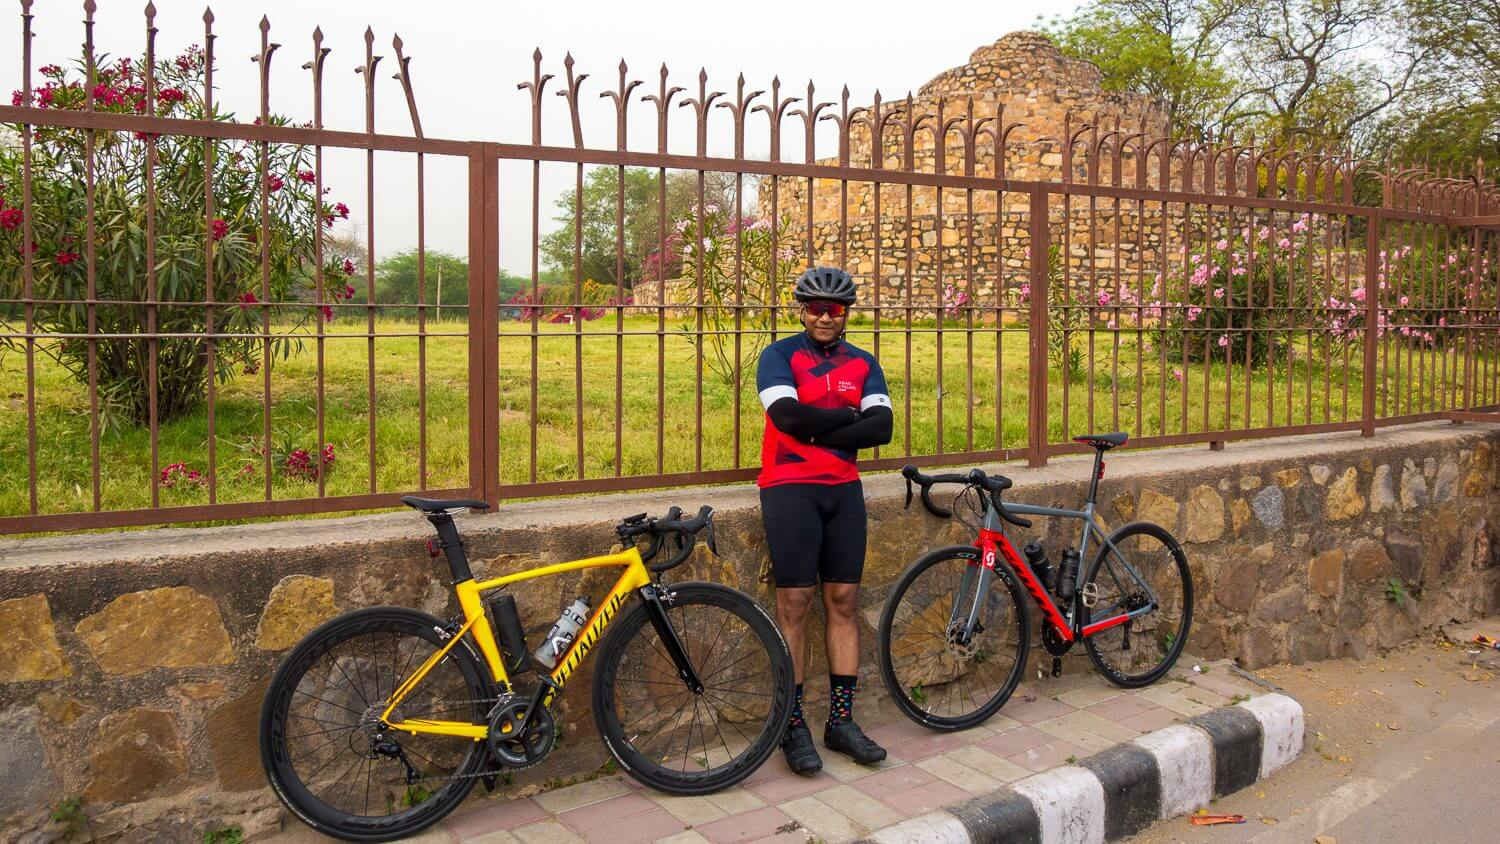 Himanshu Gupta with his cycles at Qutab Minar complex